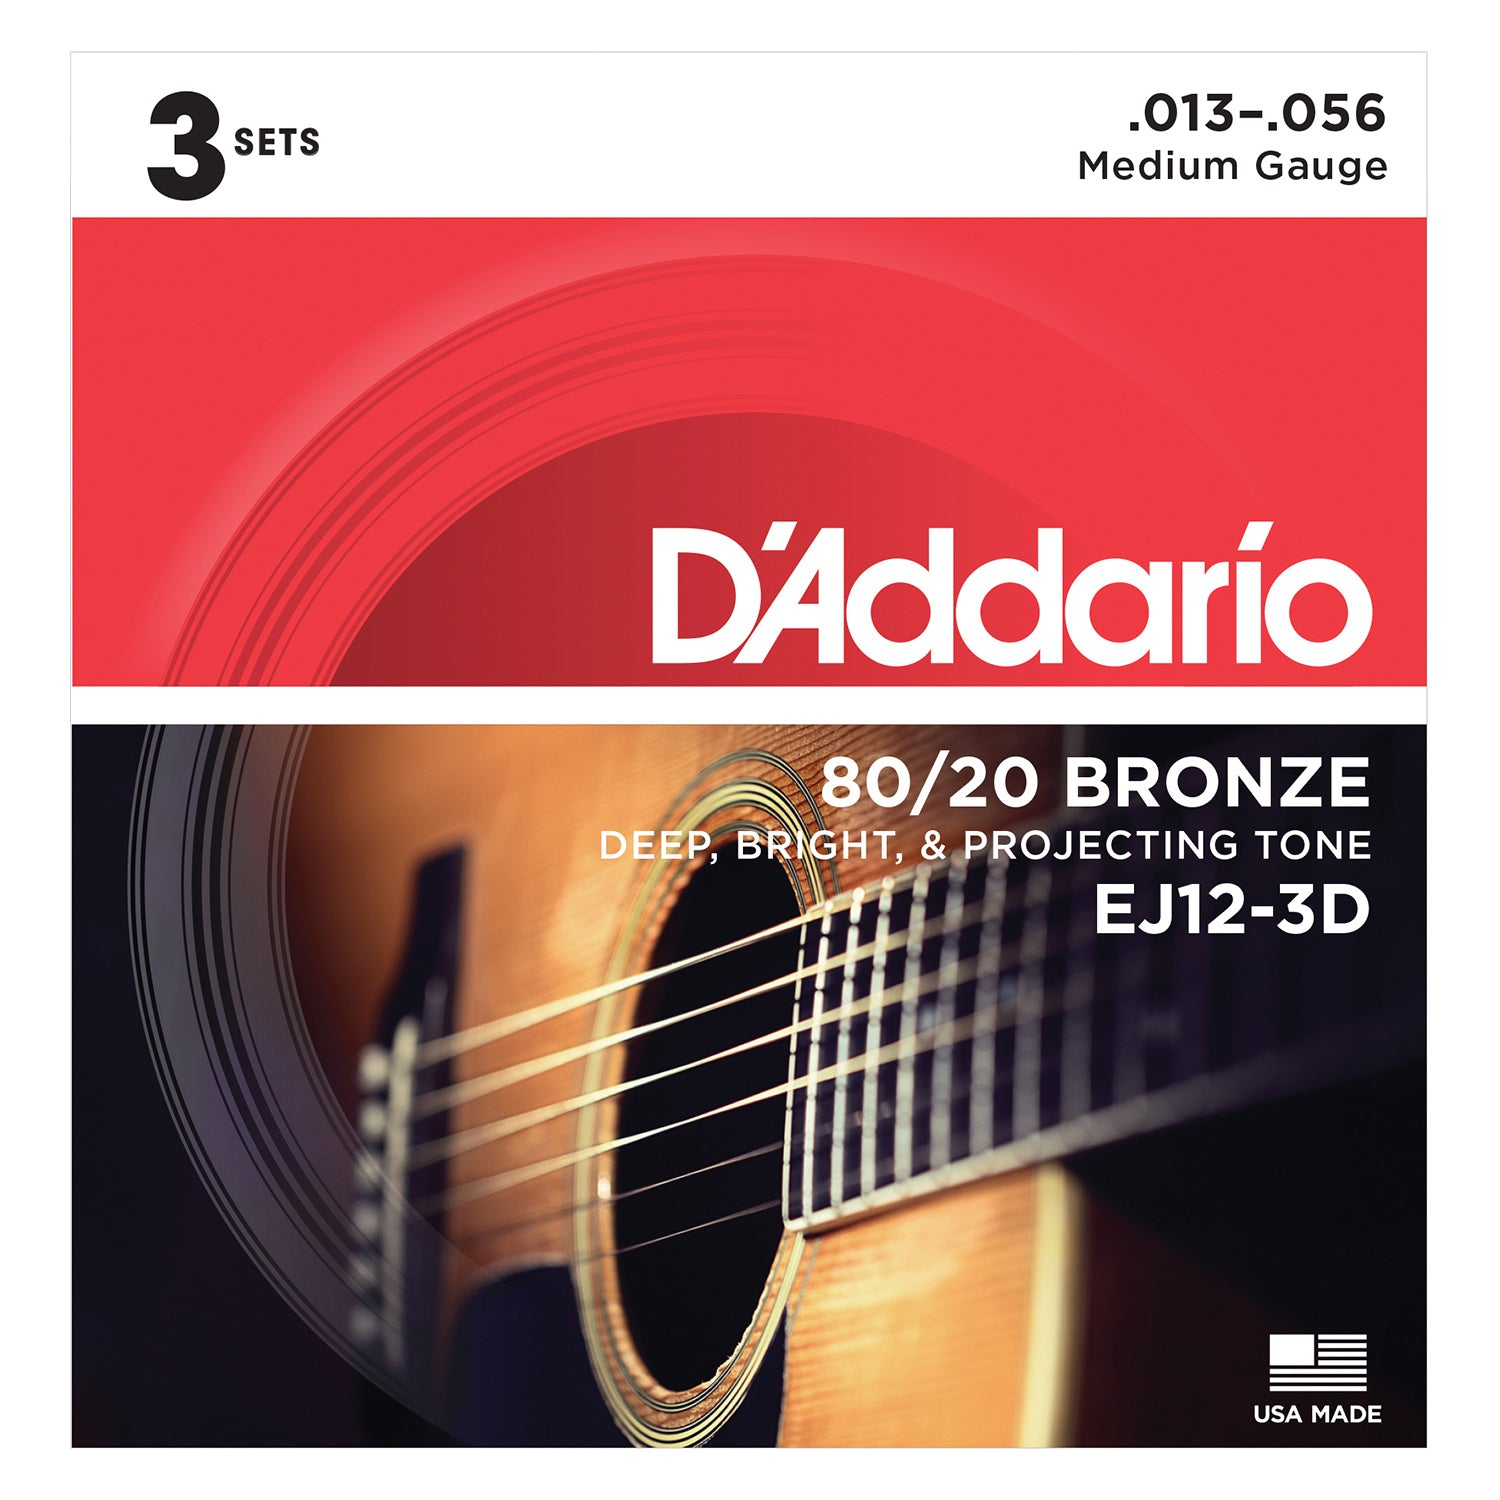 D'Addario EJ12-3D 80/12 Bronze Acoustic Guitar Strings, Medium, 13-56, 3 Sets